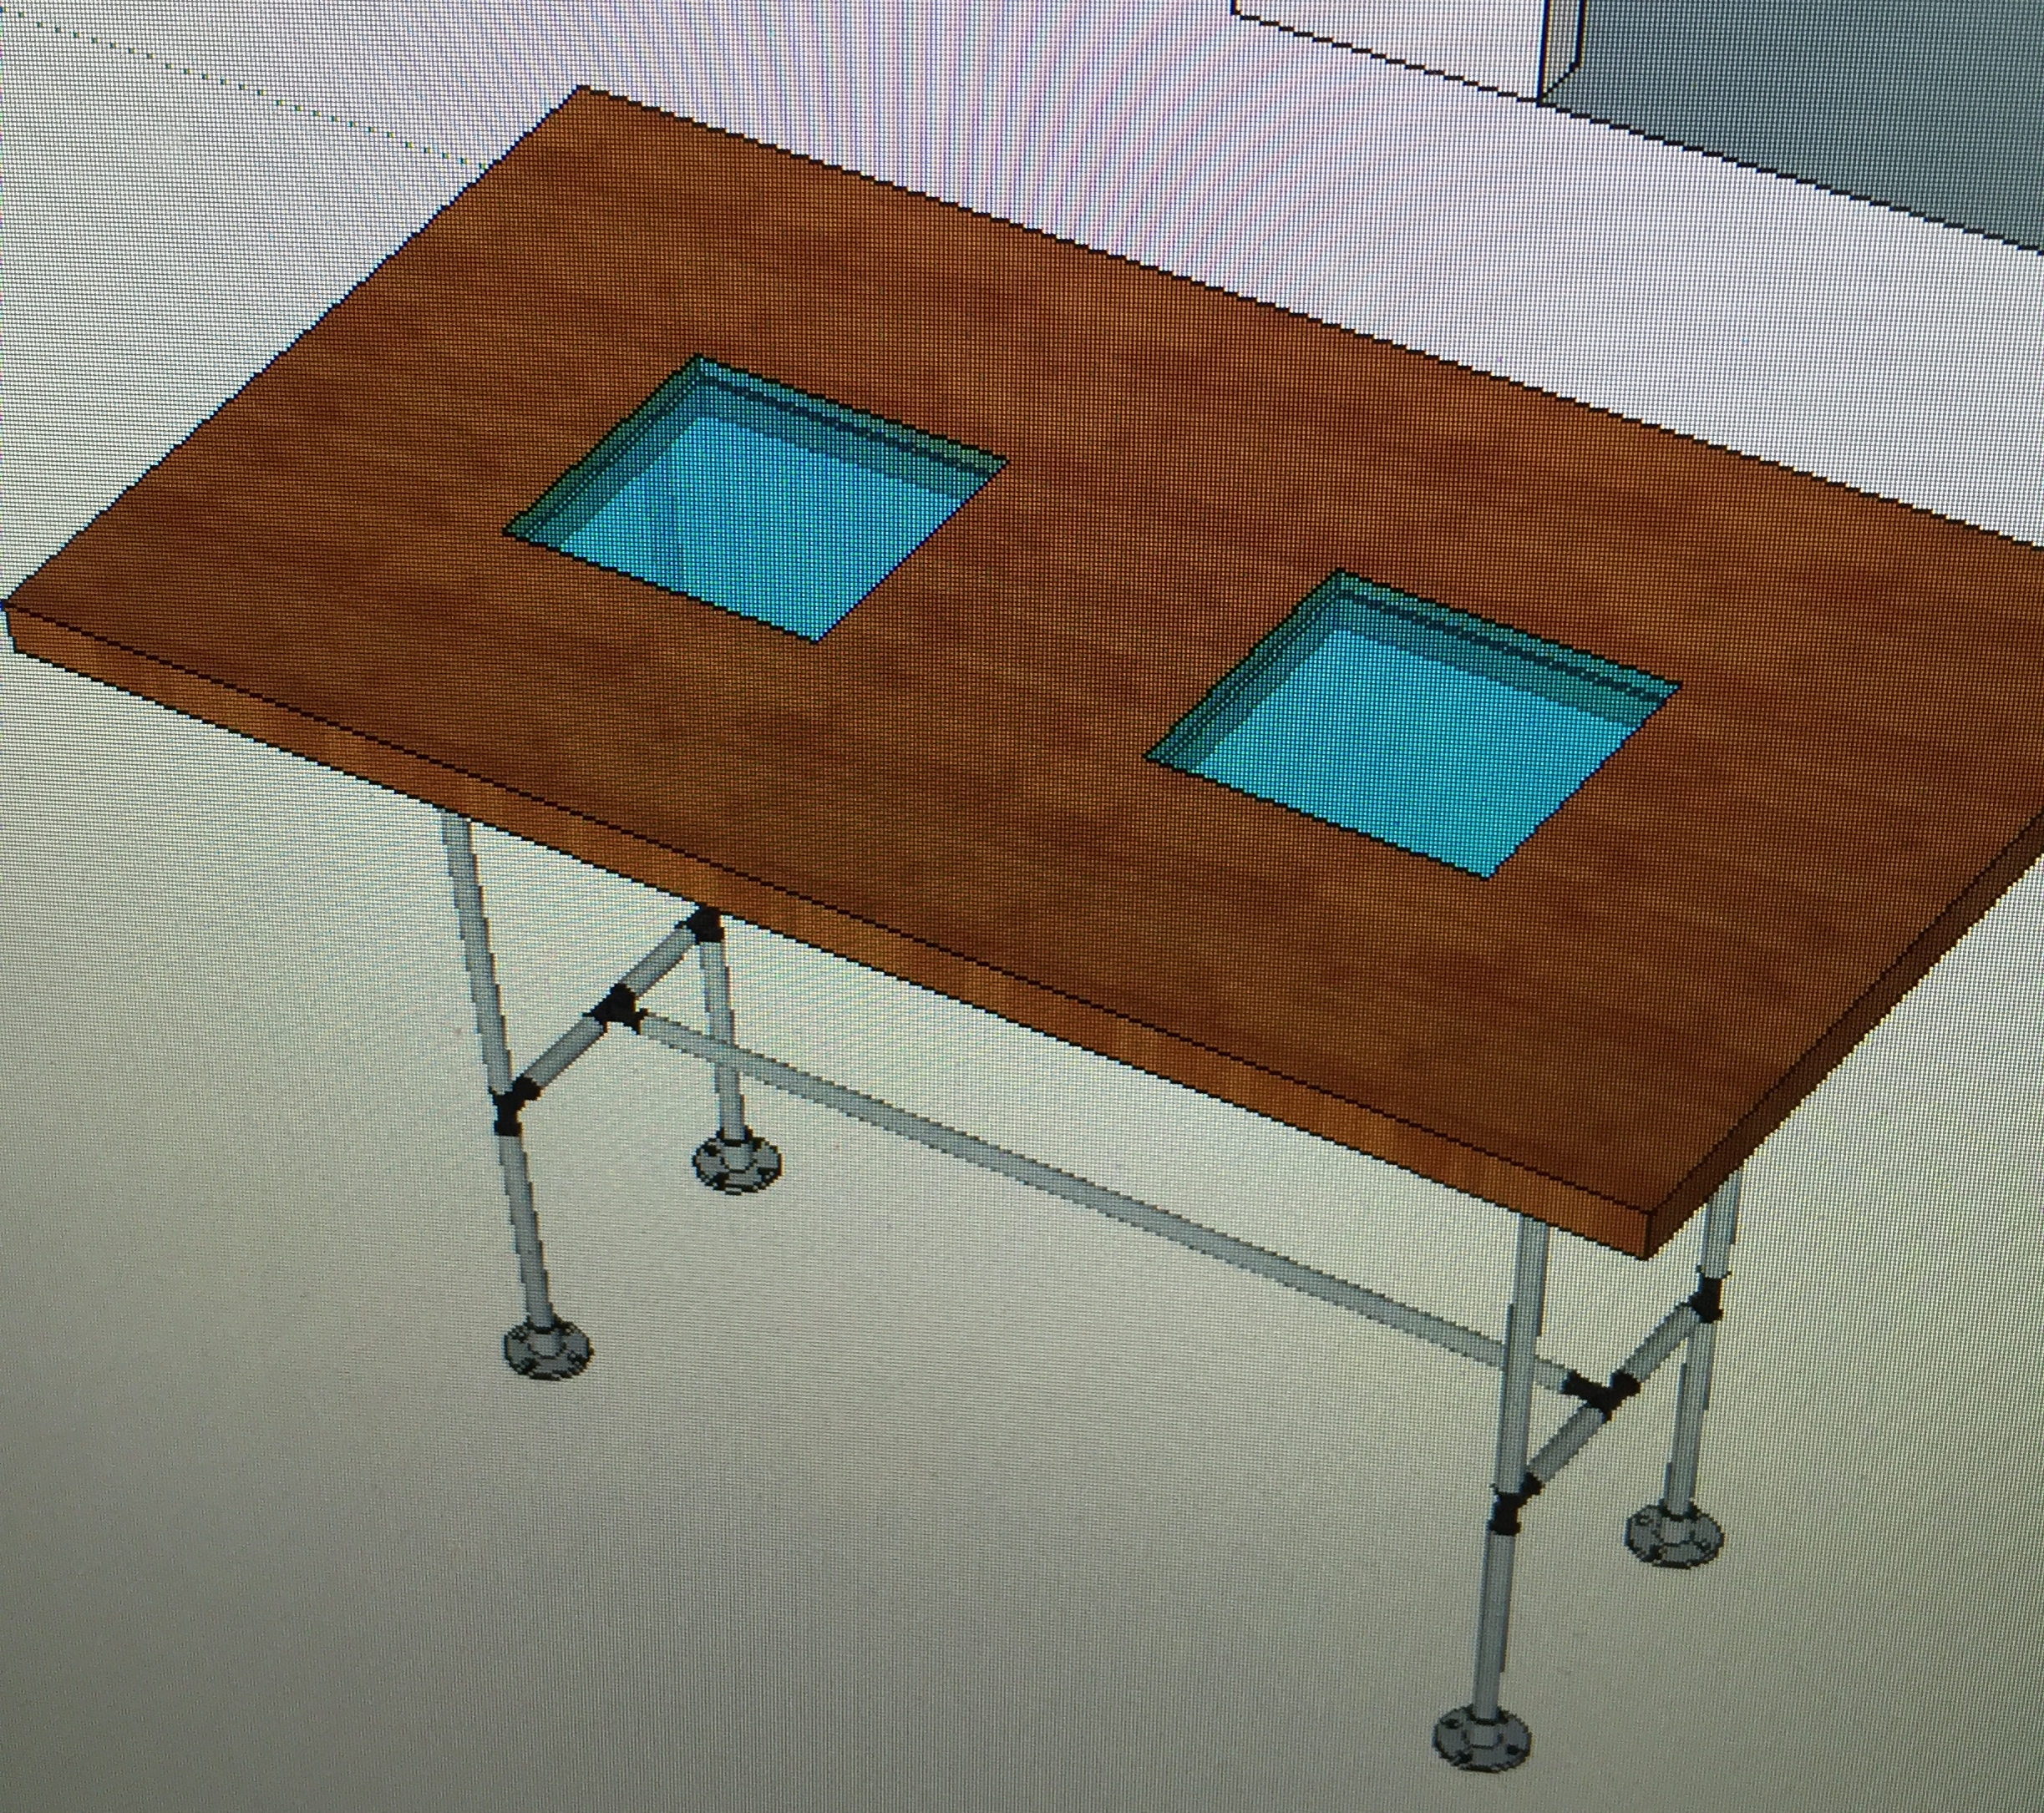 An early table design idea that was scrapped due to the size of the cedar slabs.